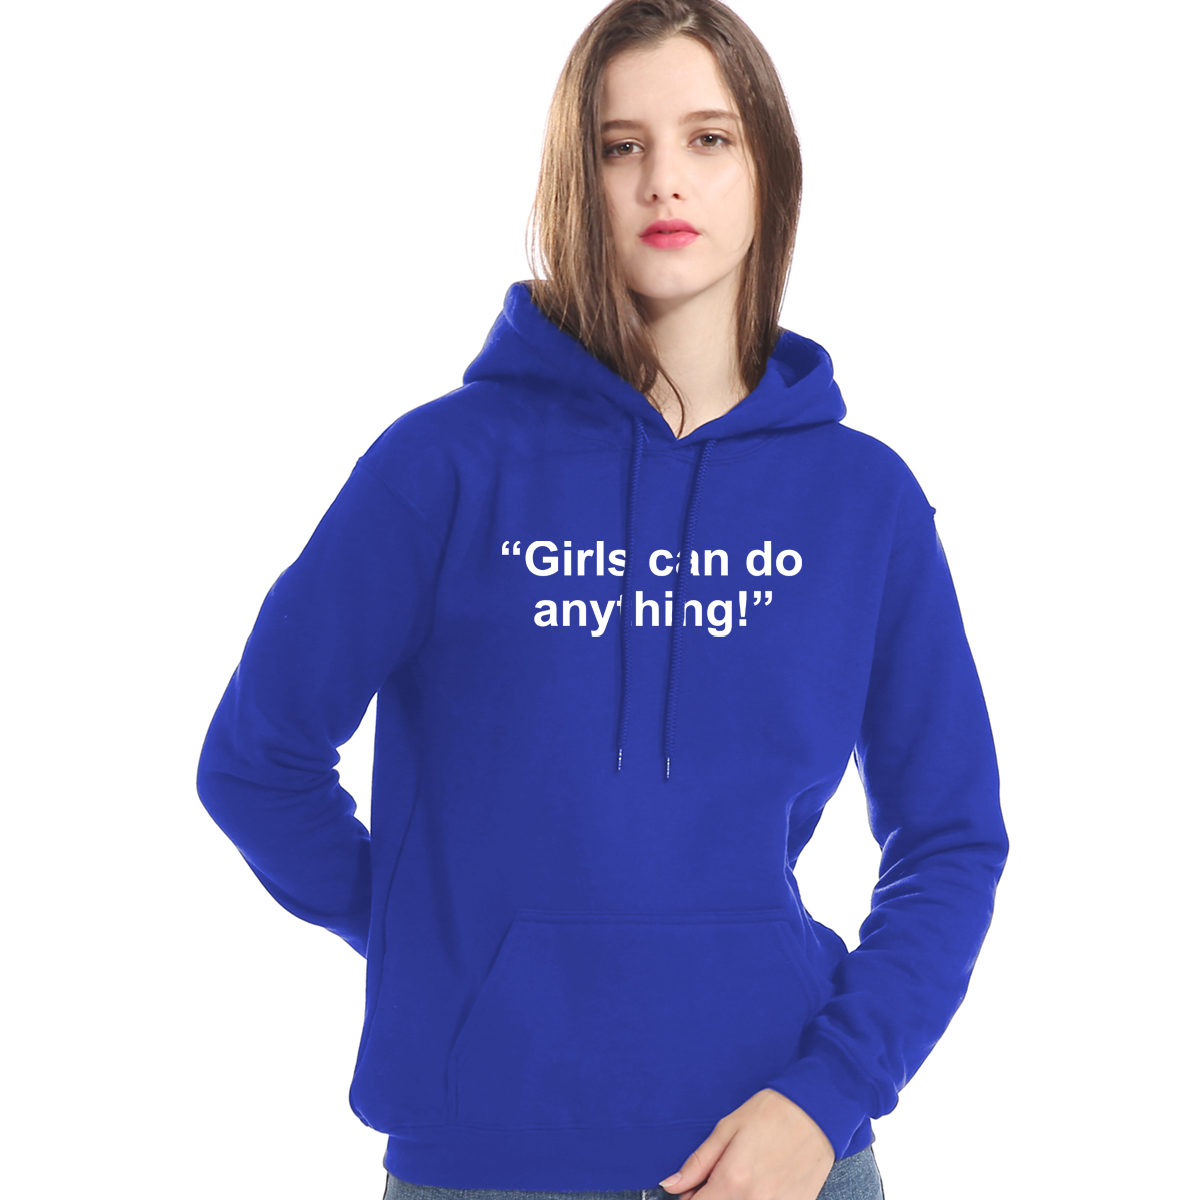 Girls Can Do Anthing Letter Print Casual Sweatshirt For Women Hoodie 2019 Autumn Winter Brand Clothes Hoody Kpop Women's Hoodies